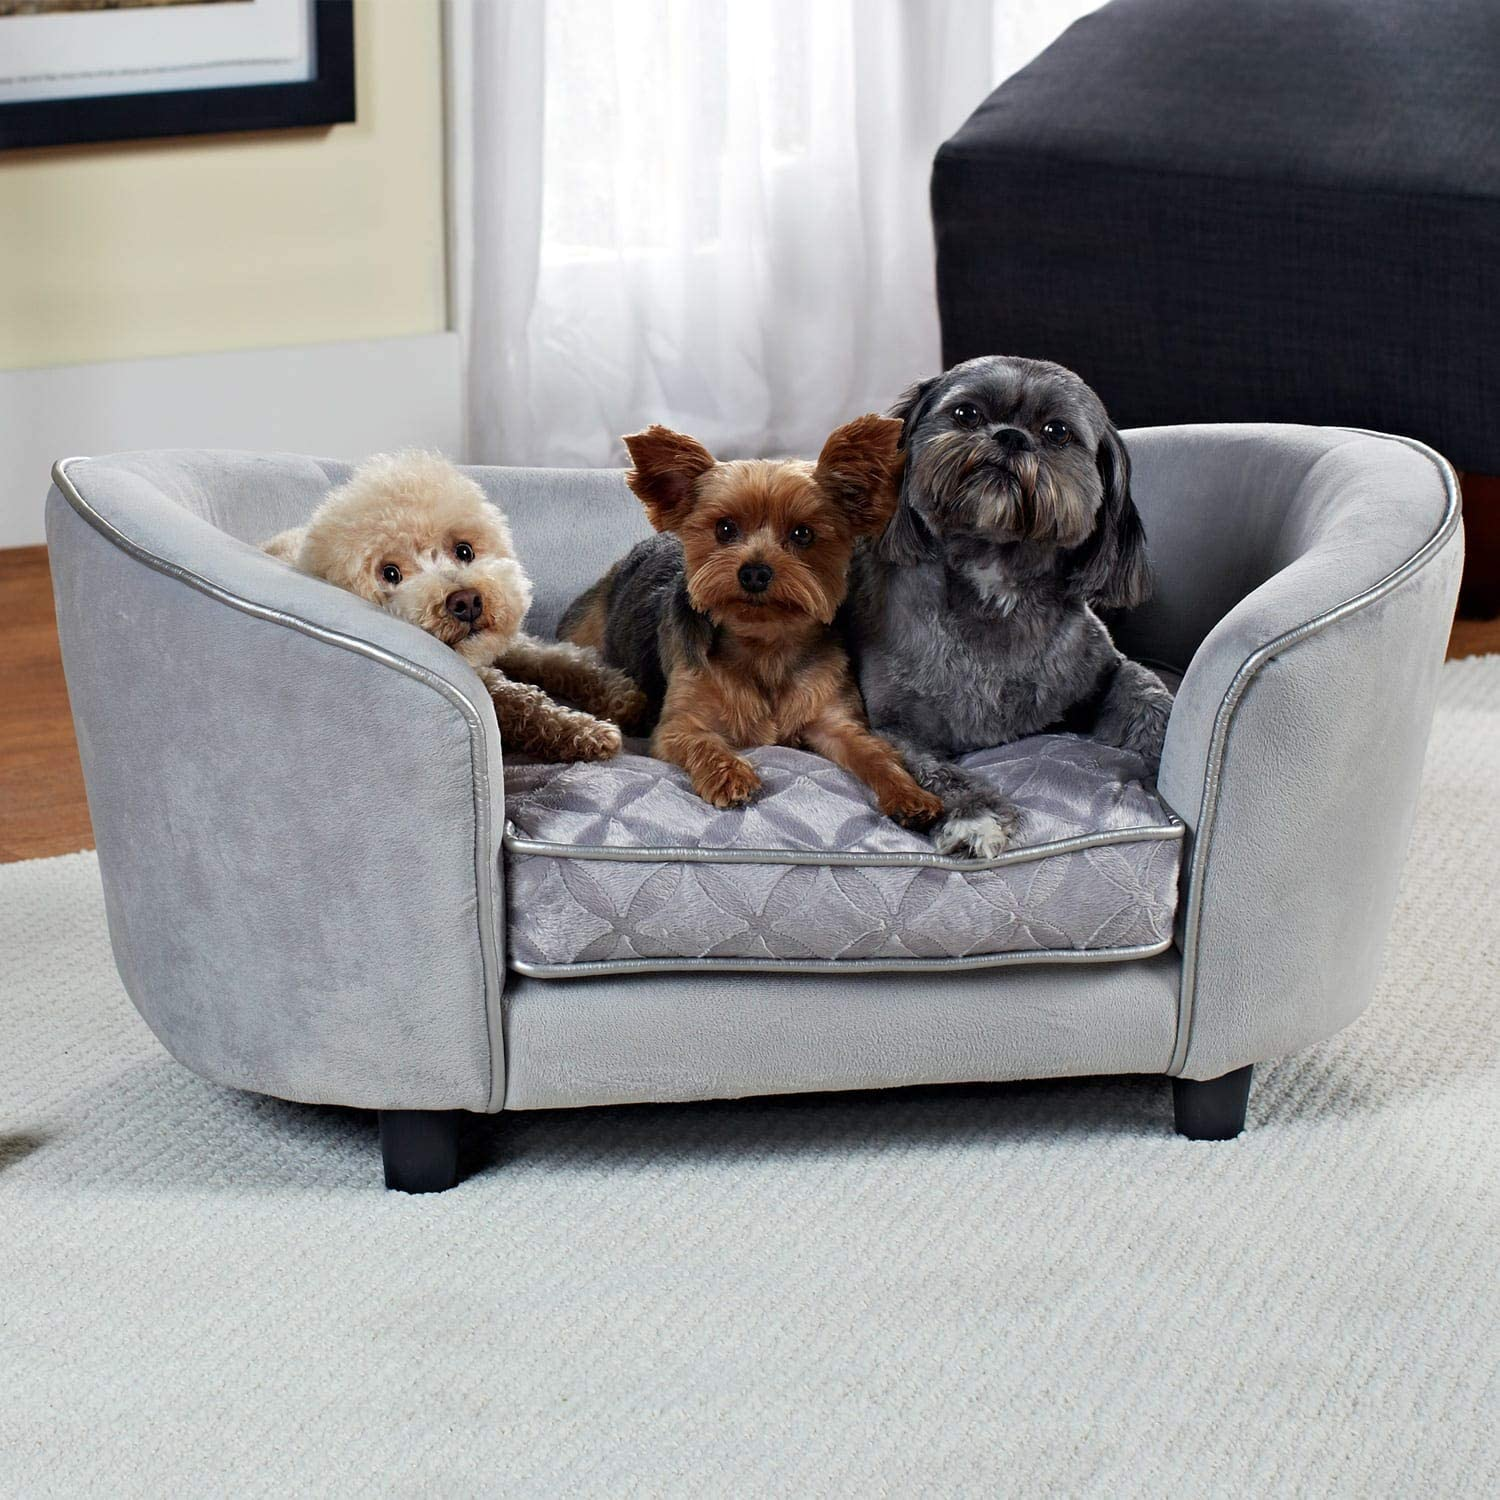 Enchanted Home Pet Quicksilver Pet Sofa Bed, 34 by 3 by 15.5-Inch, Silver : Pet Furniture : Pet Supplies